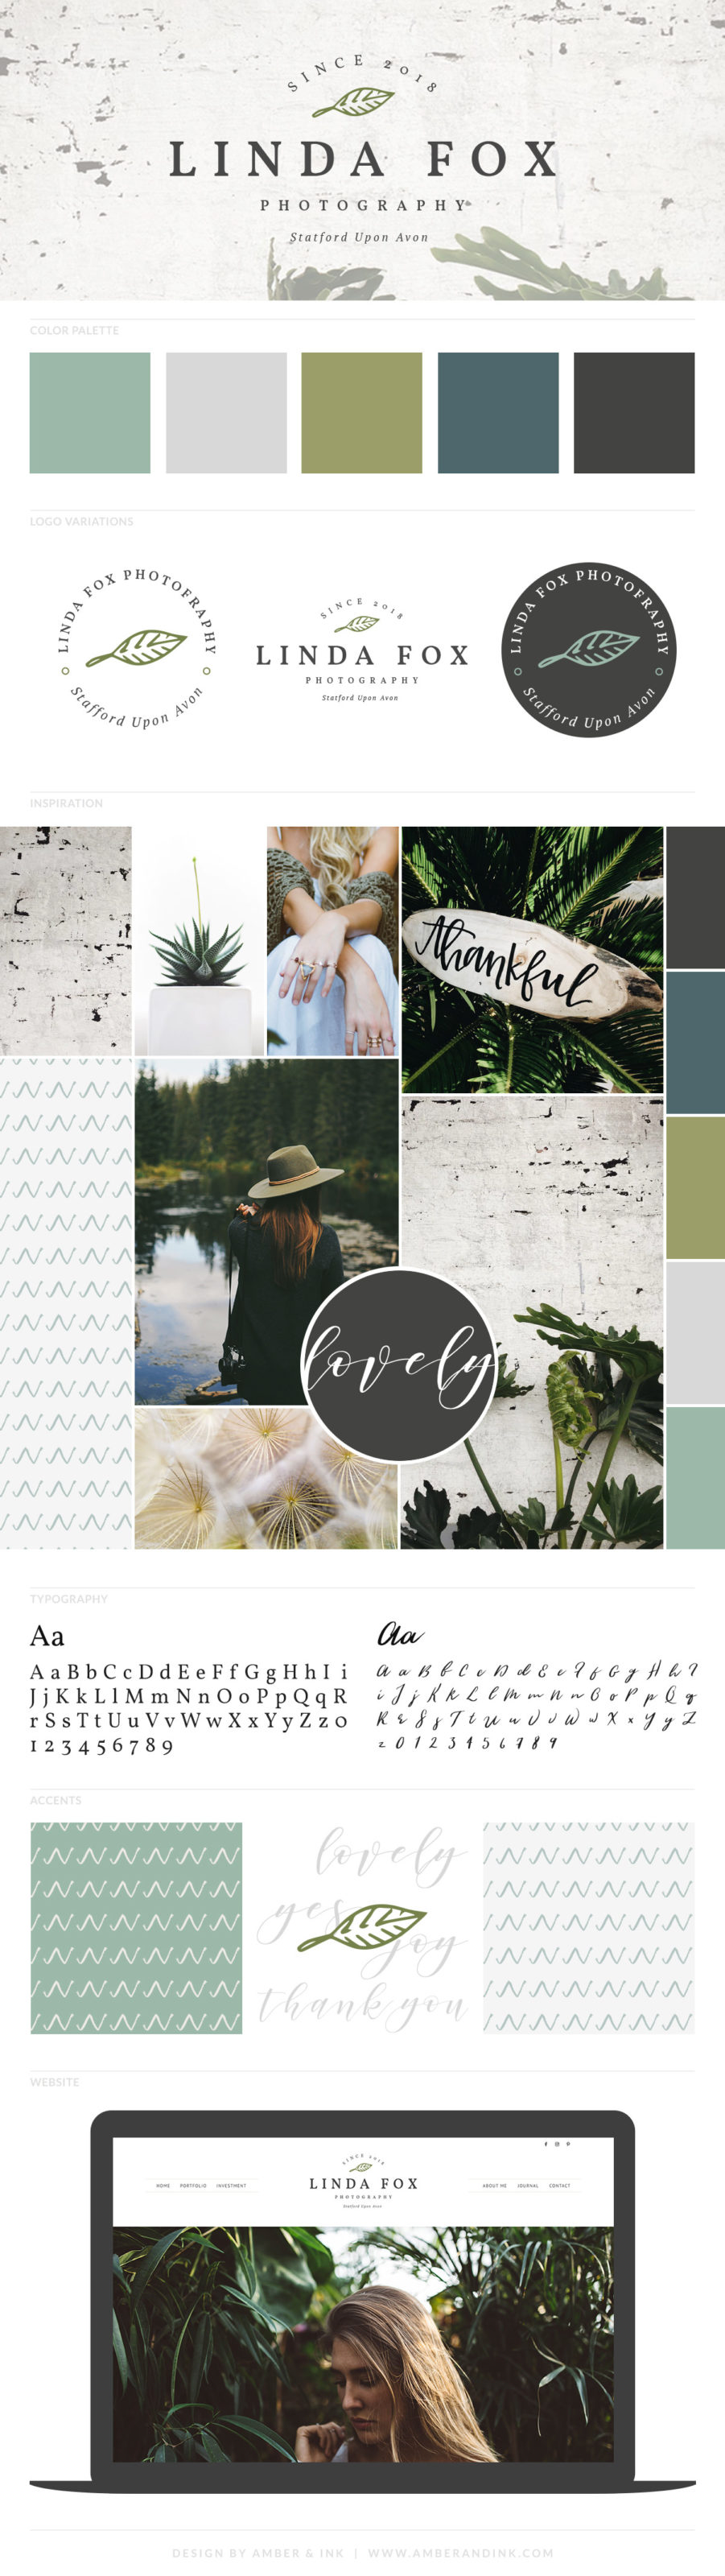 Branding board for a photographer. Includes green, boho vibes, website, color palette and moon board.